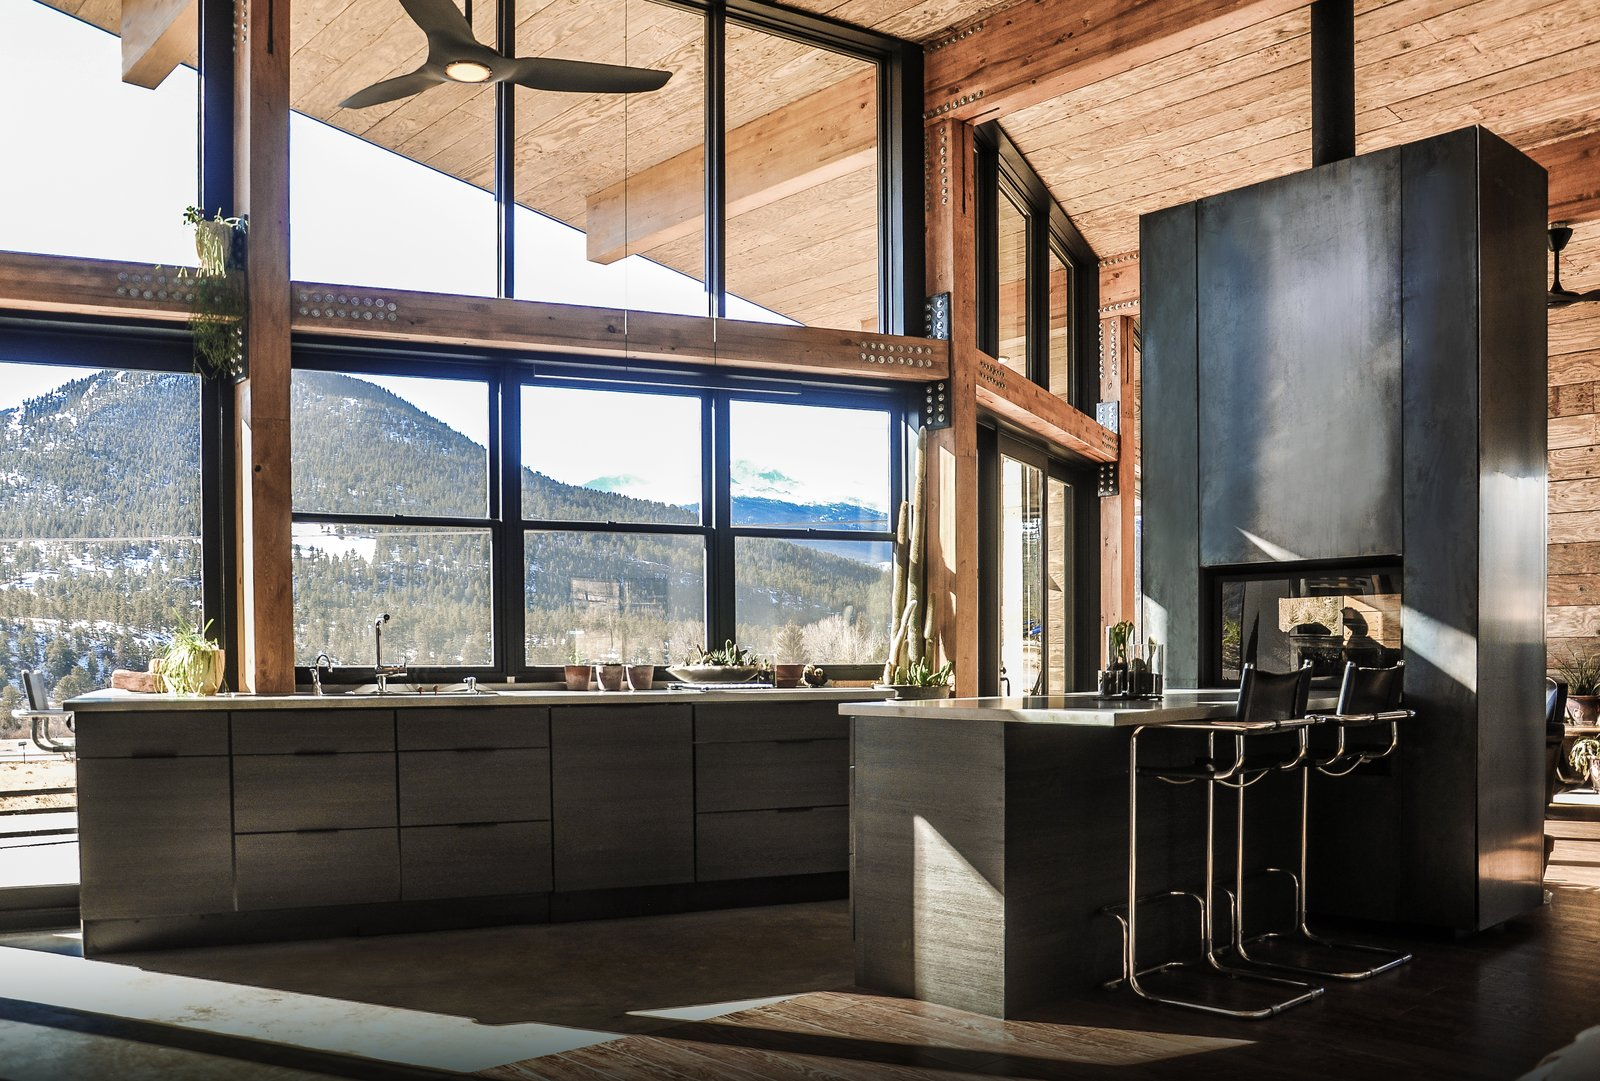 Kitchen, Refrigerator, Microwave, Cooktops, Wood, Dishwasher, Ceiling, Metal, Dark Hardwood, Concrete, Concrete, Range, Wall Oven, Pendant, Concrete, Accent, and Drop In The warm industrial kitchen celebrates views of Rocky Mountain National Park beyond. A see-through, steel fireplace becomes a glowing beacon that warms the kitchen and living room at the heart of the home.   Kitchen Concrete Metal Dishwasher Photos from Estes Park Residence